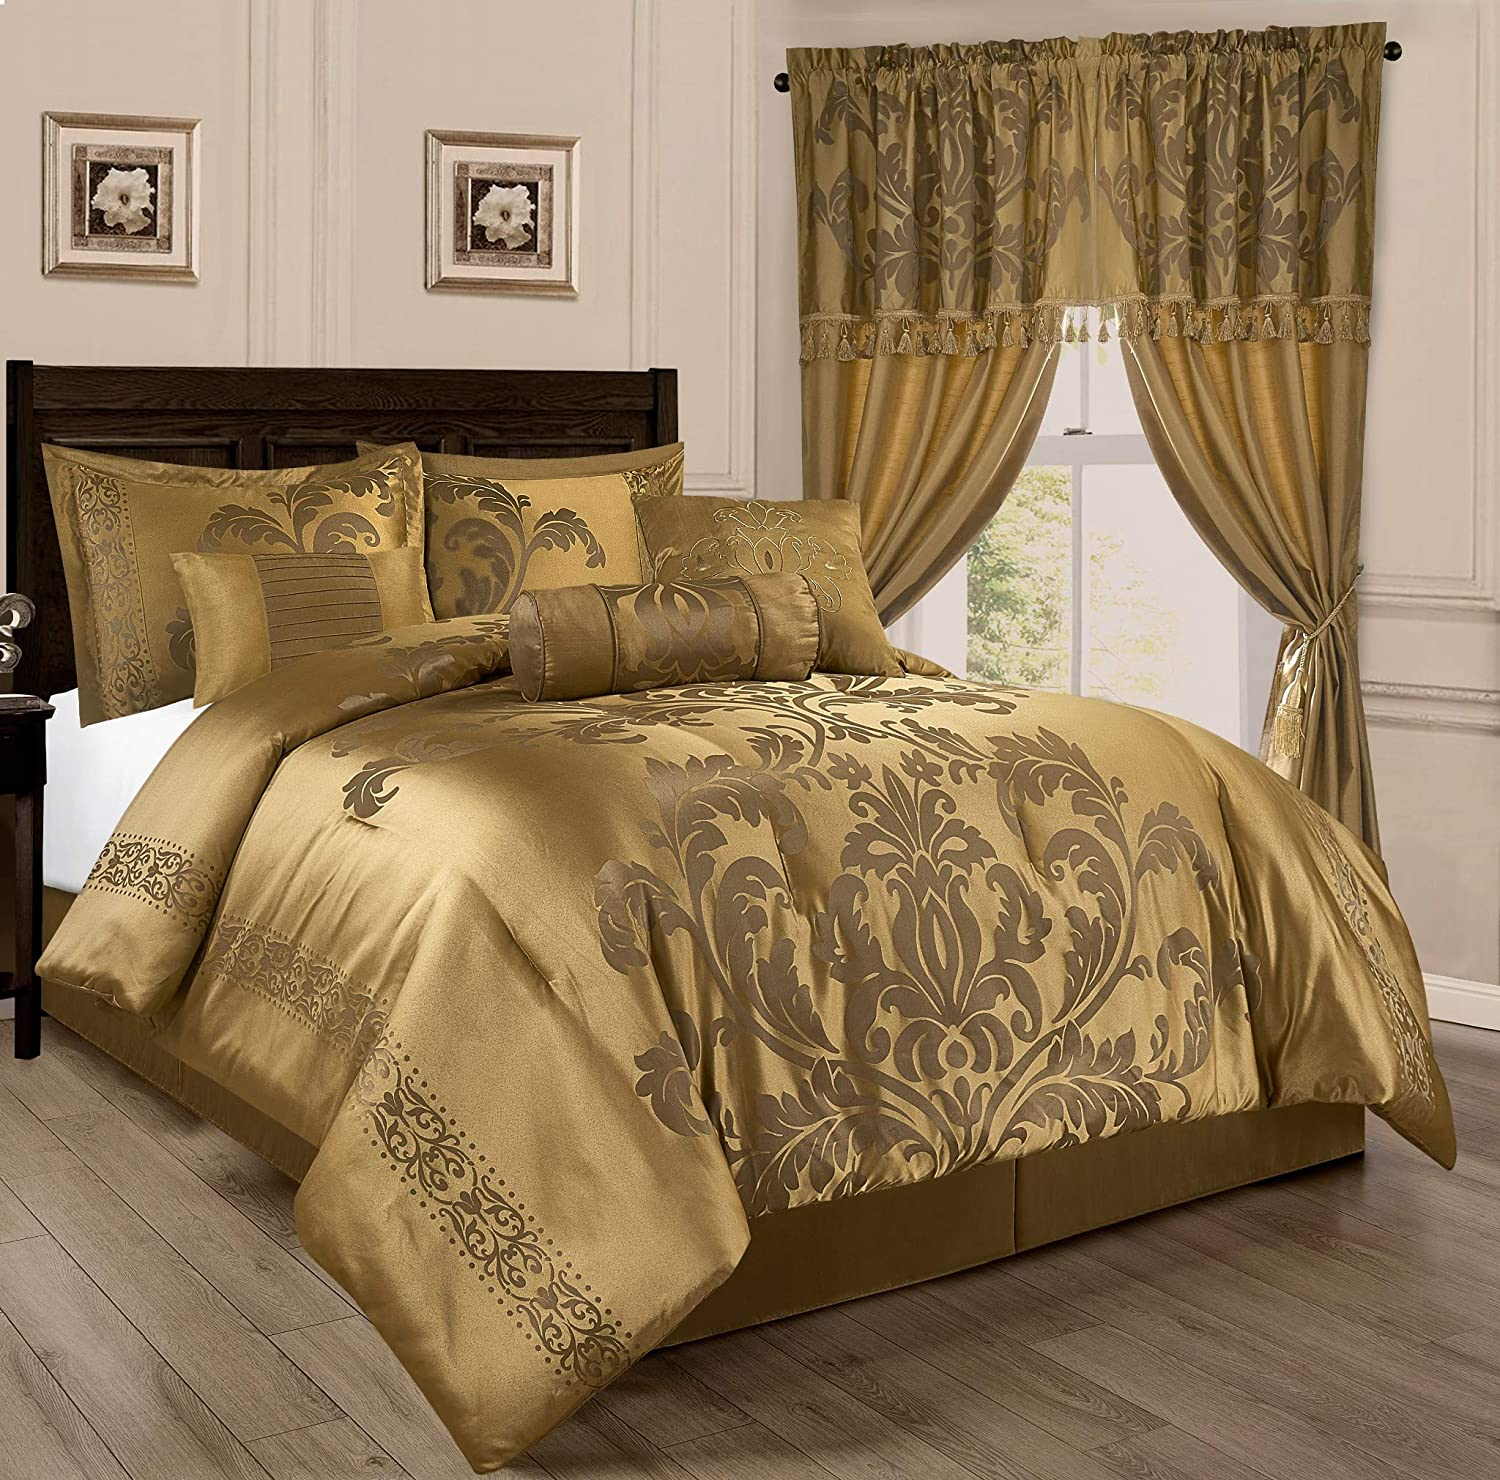 Chezmoi Collection 7-Piece Jacquard Floral Comforter Set (Queen, Gold)